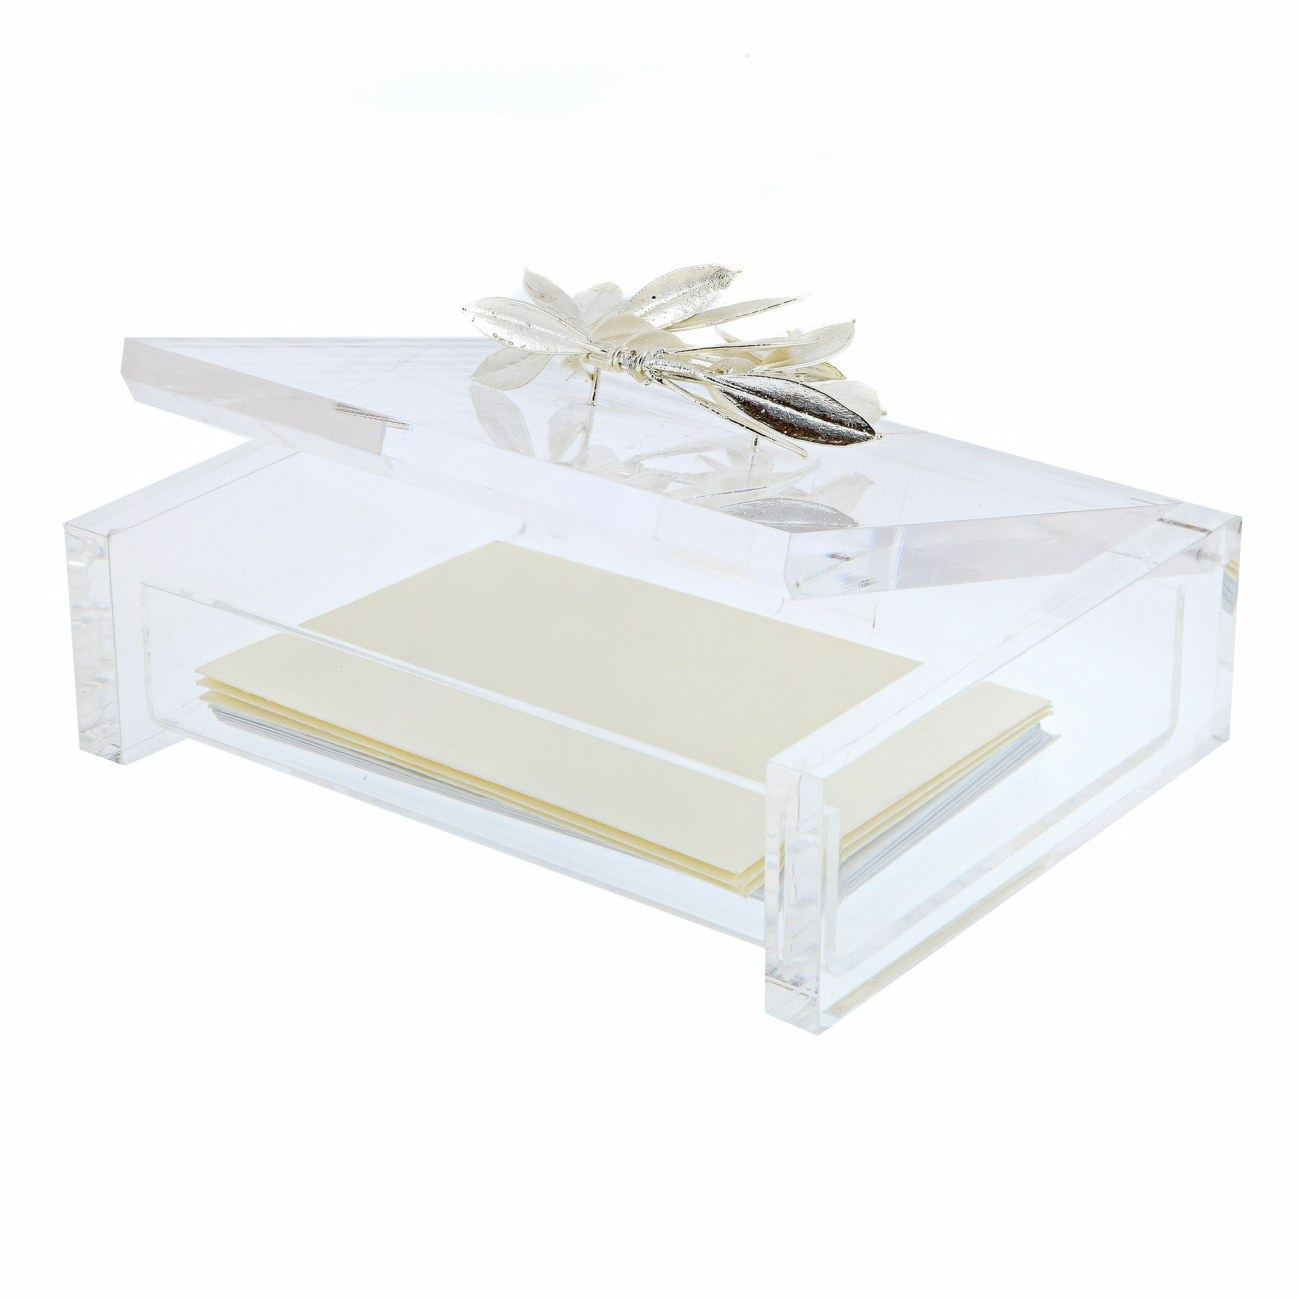 Business Card Box or Holder with Real Olive Wreath 925 Sterling ...